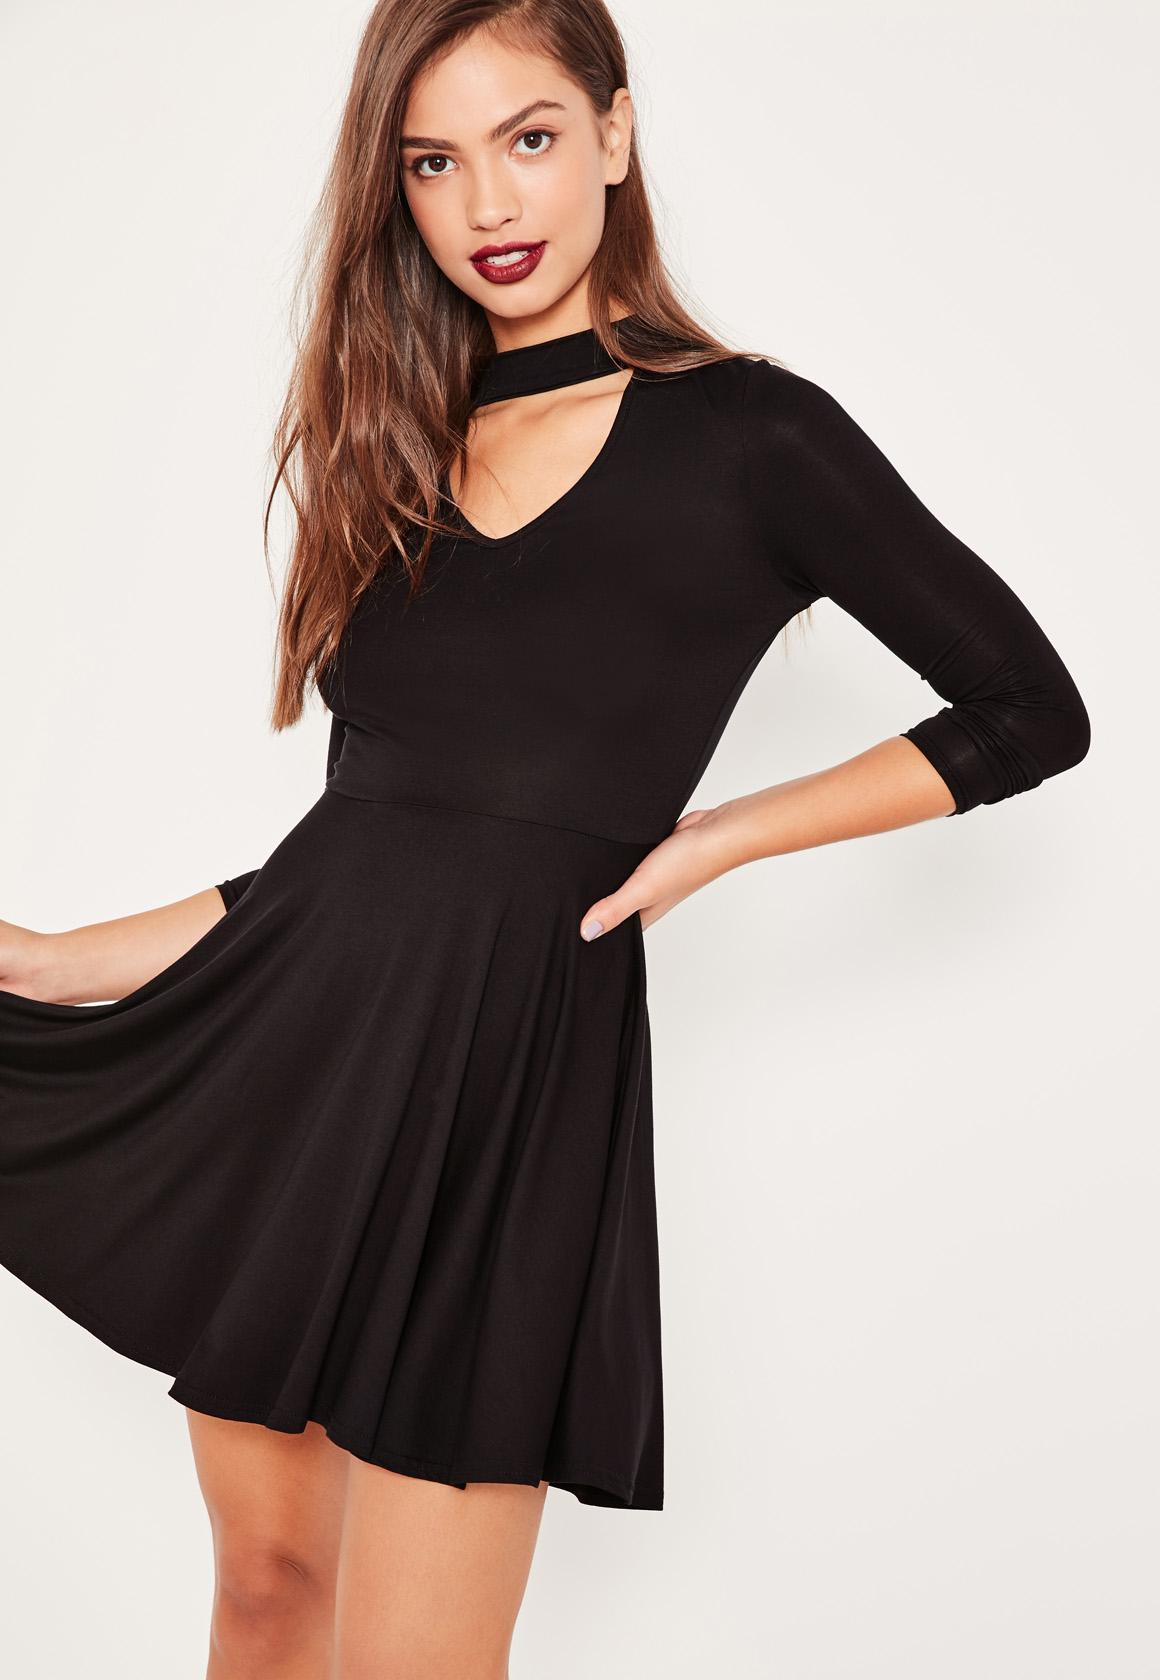 Black Choker Neck Skater Dress